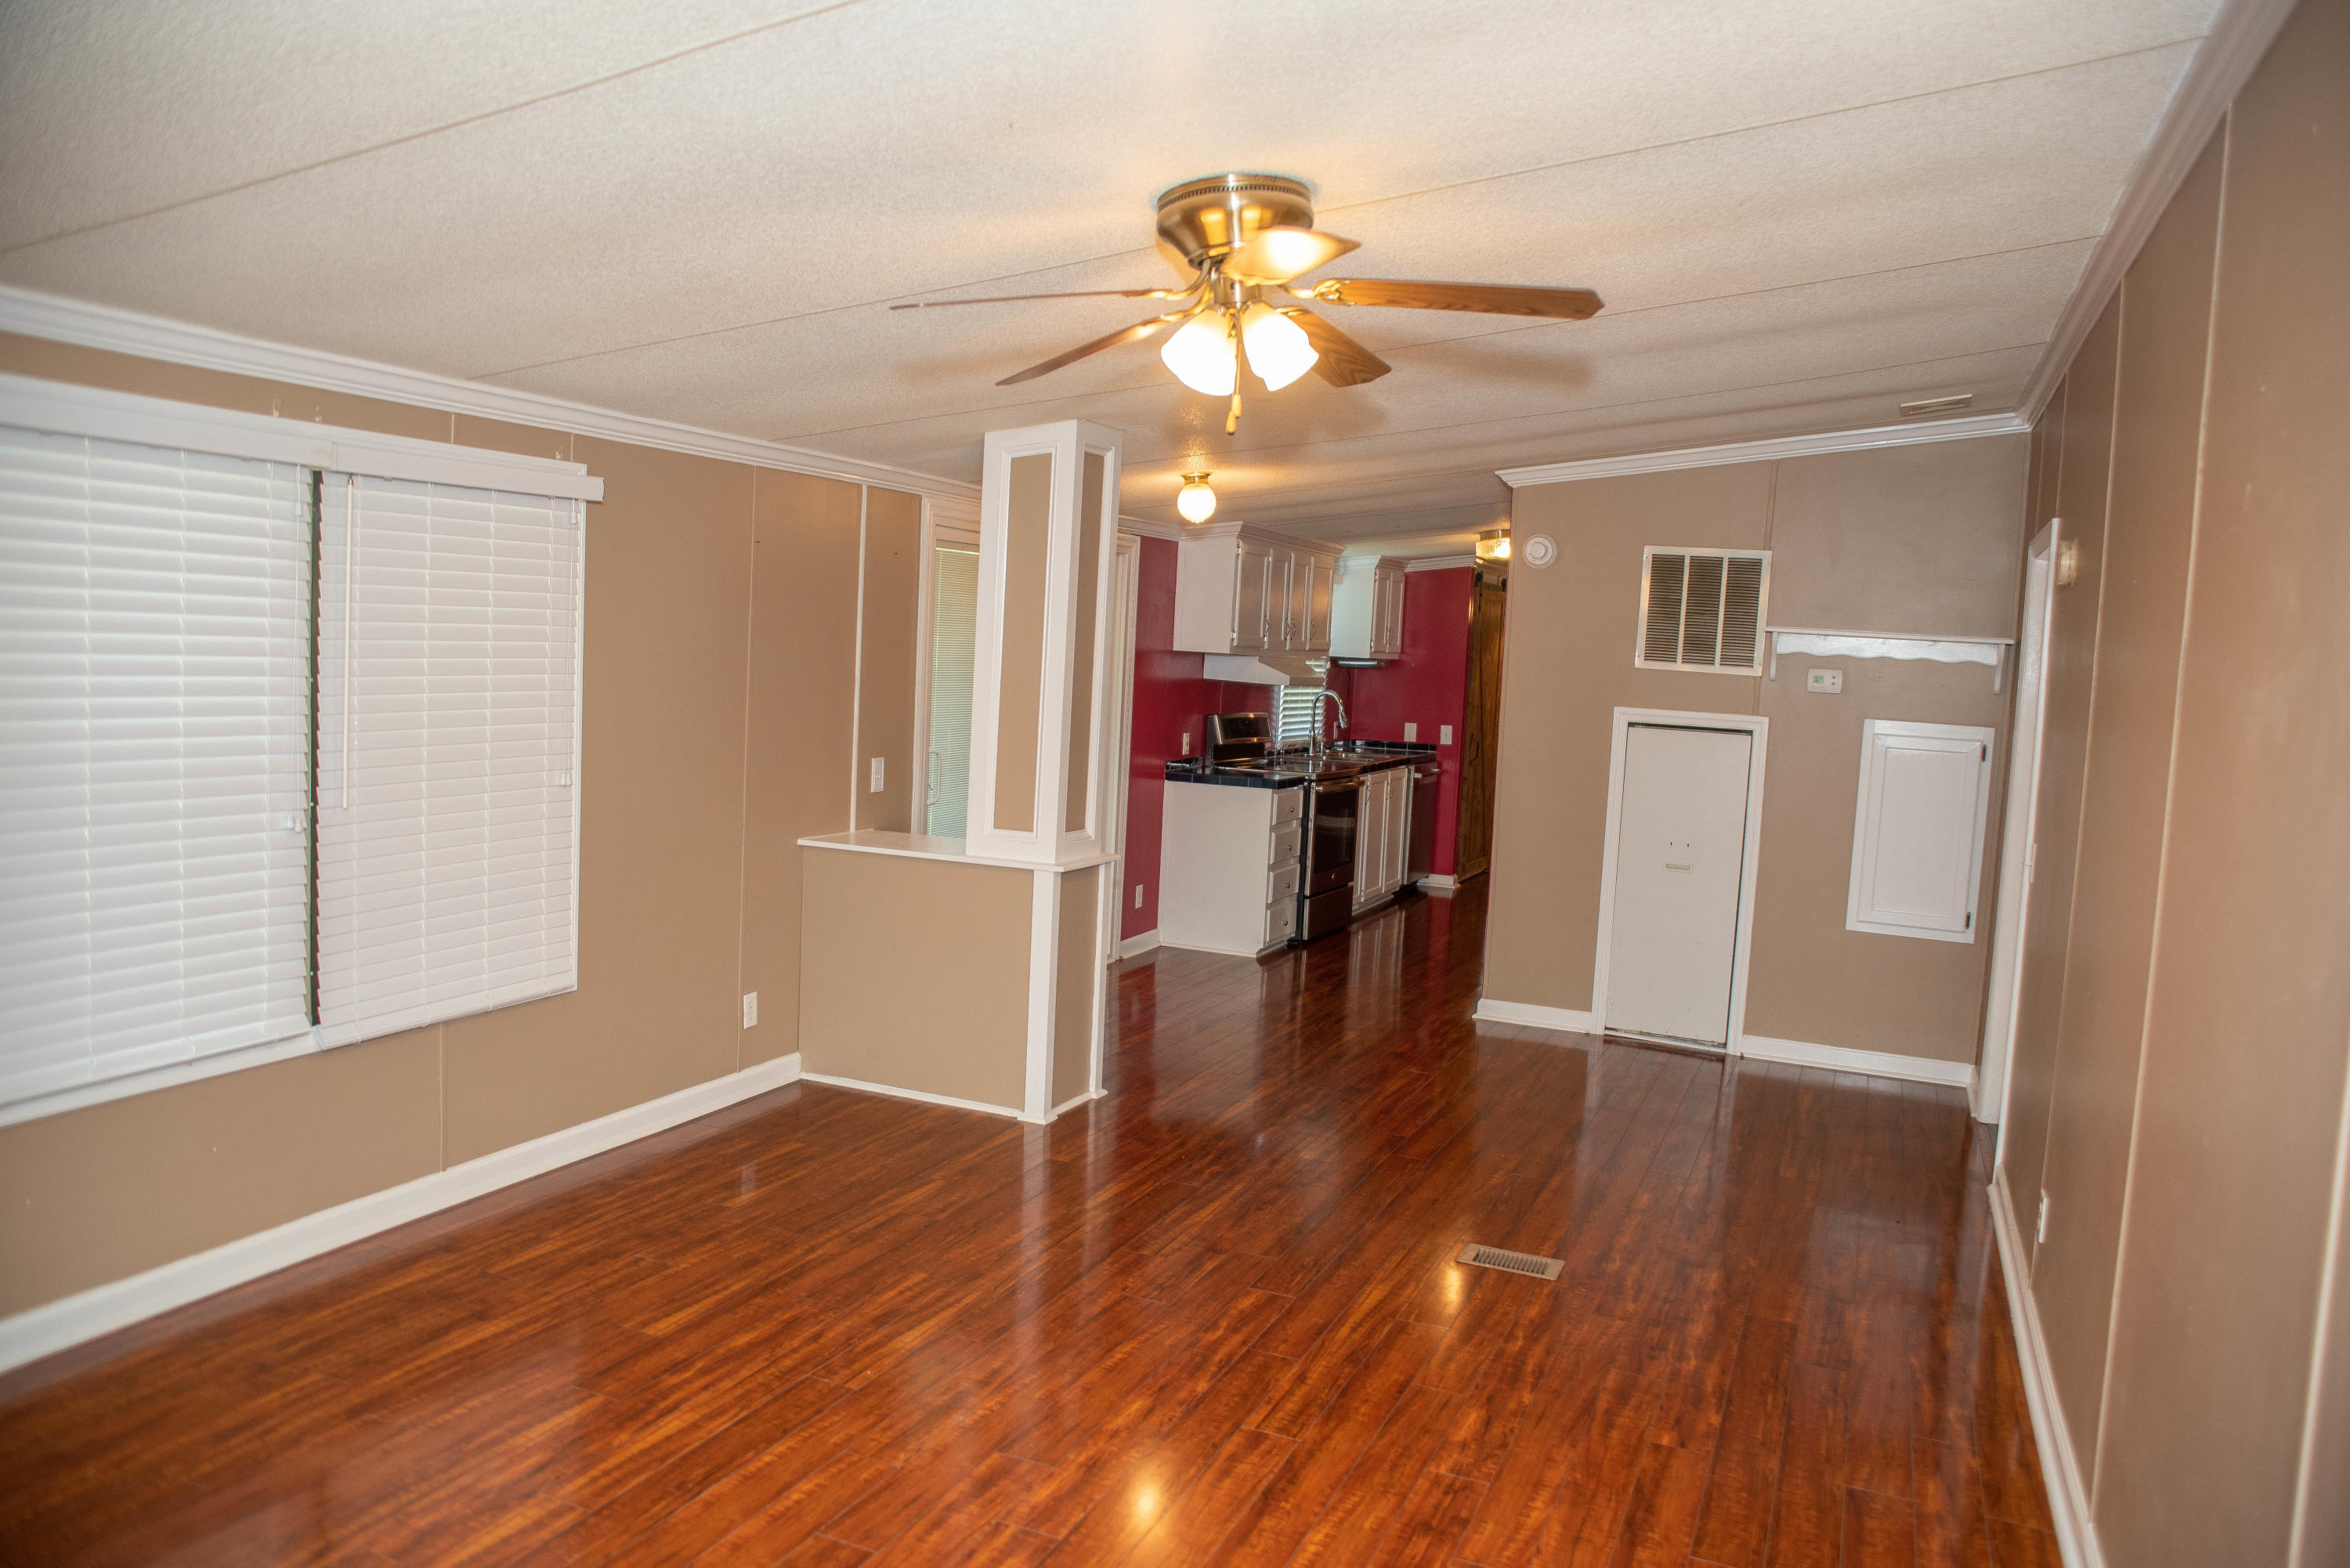 Twin Lakes Homes For Sale - 331 Twin Lakes, Summerville, SC - 48